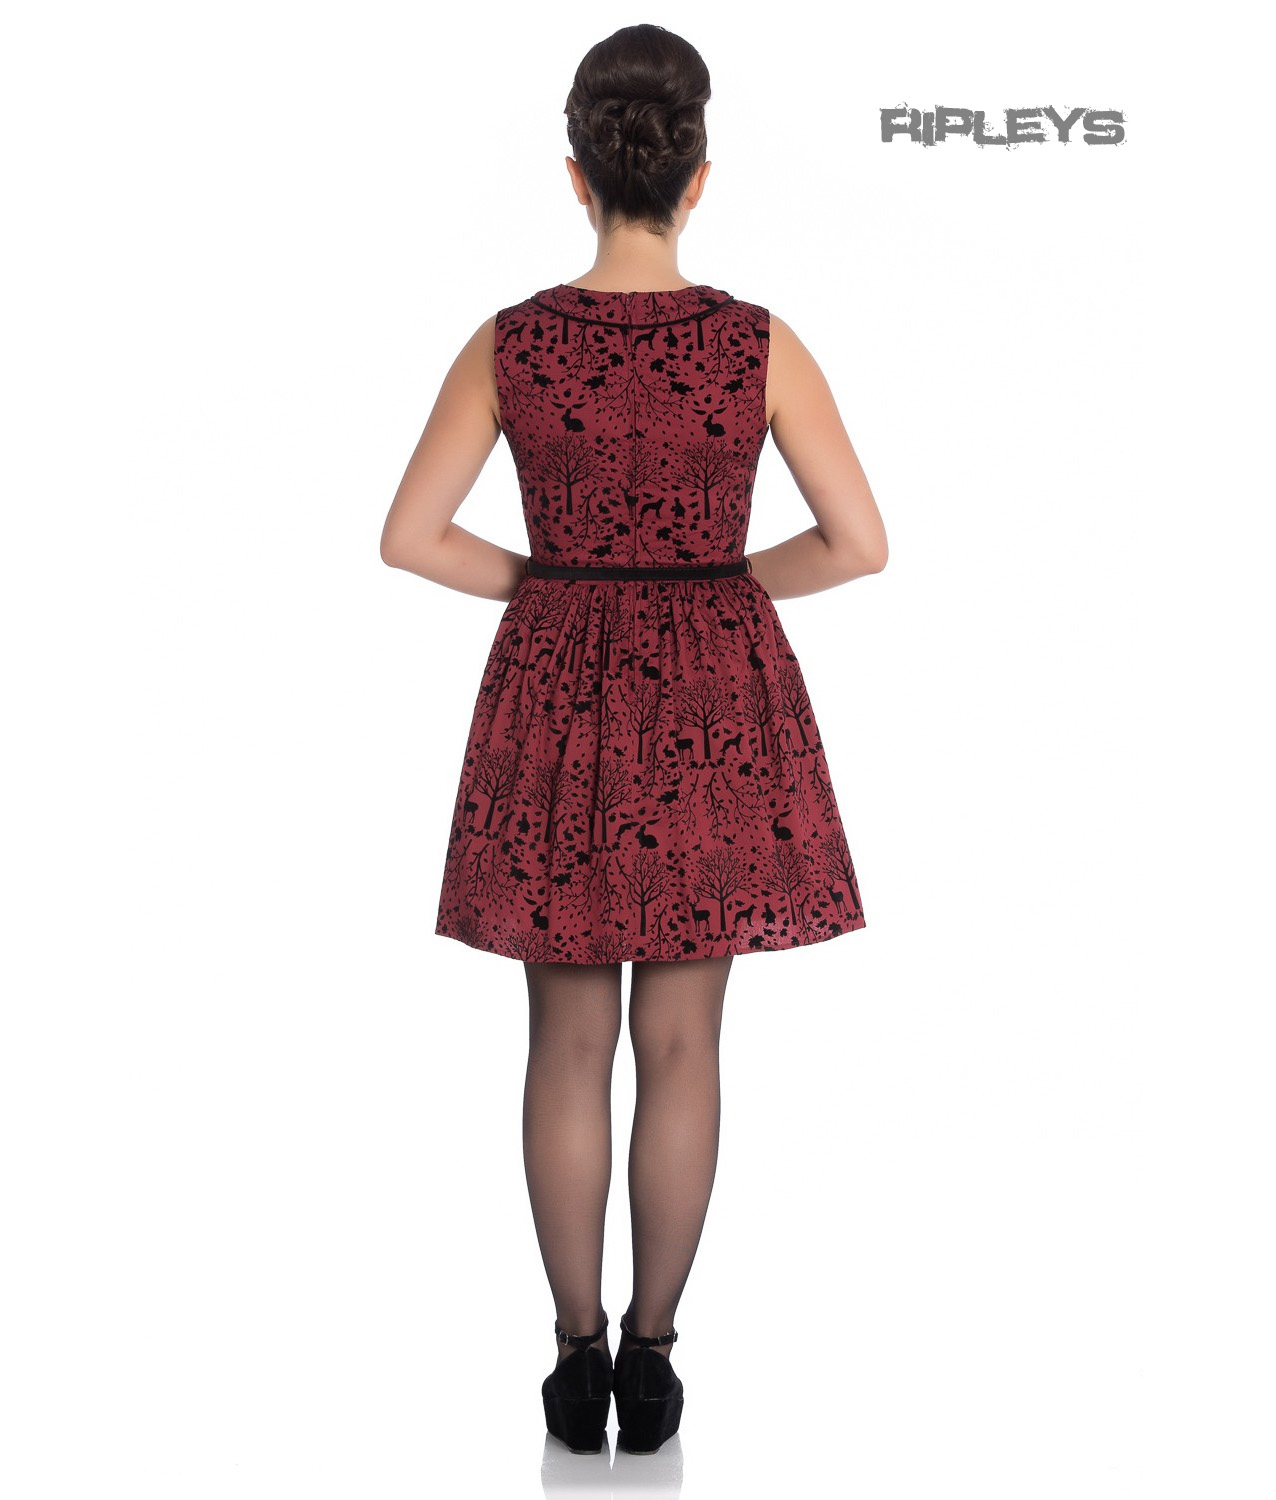 Hell-Bunny-50s-Mini-Skater-Dress-Woodland-Trees-SHERWOOD-Black-Red-All-Sizes thumbnail 24